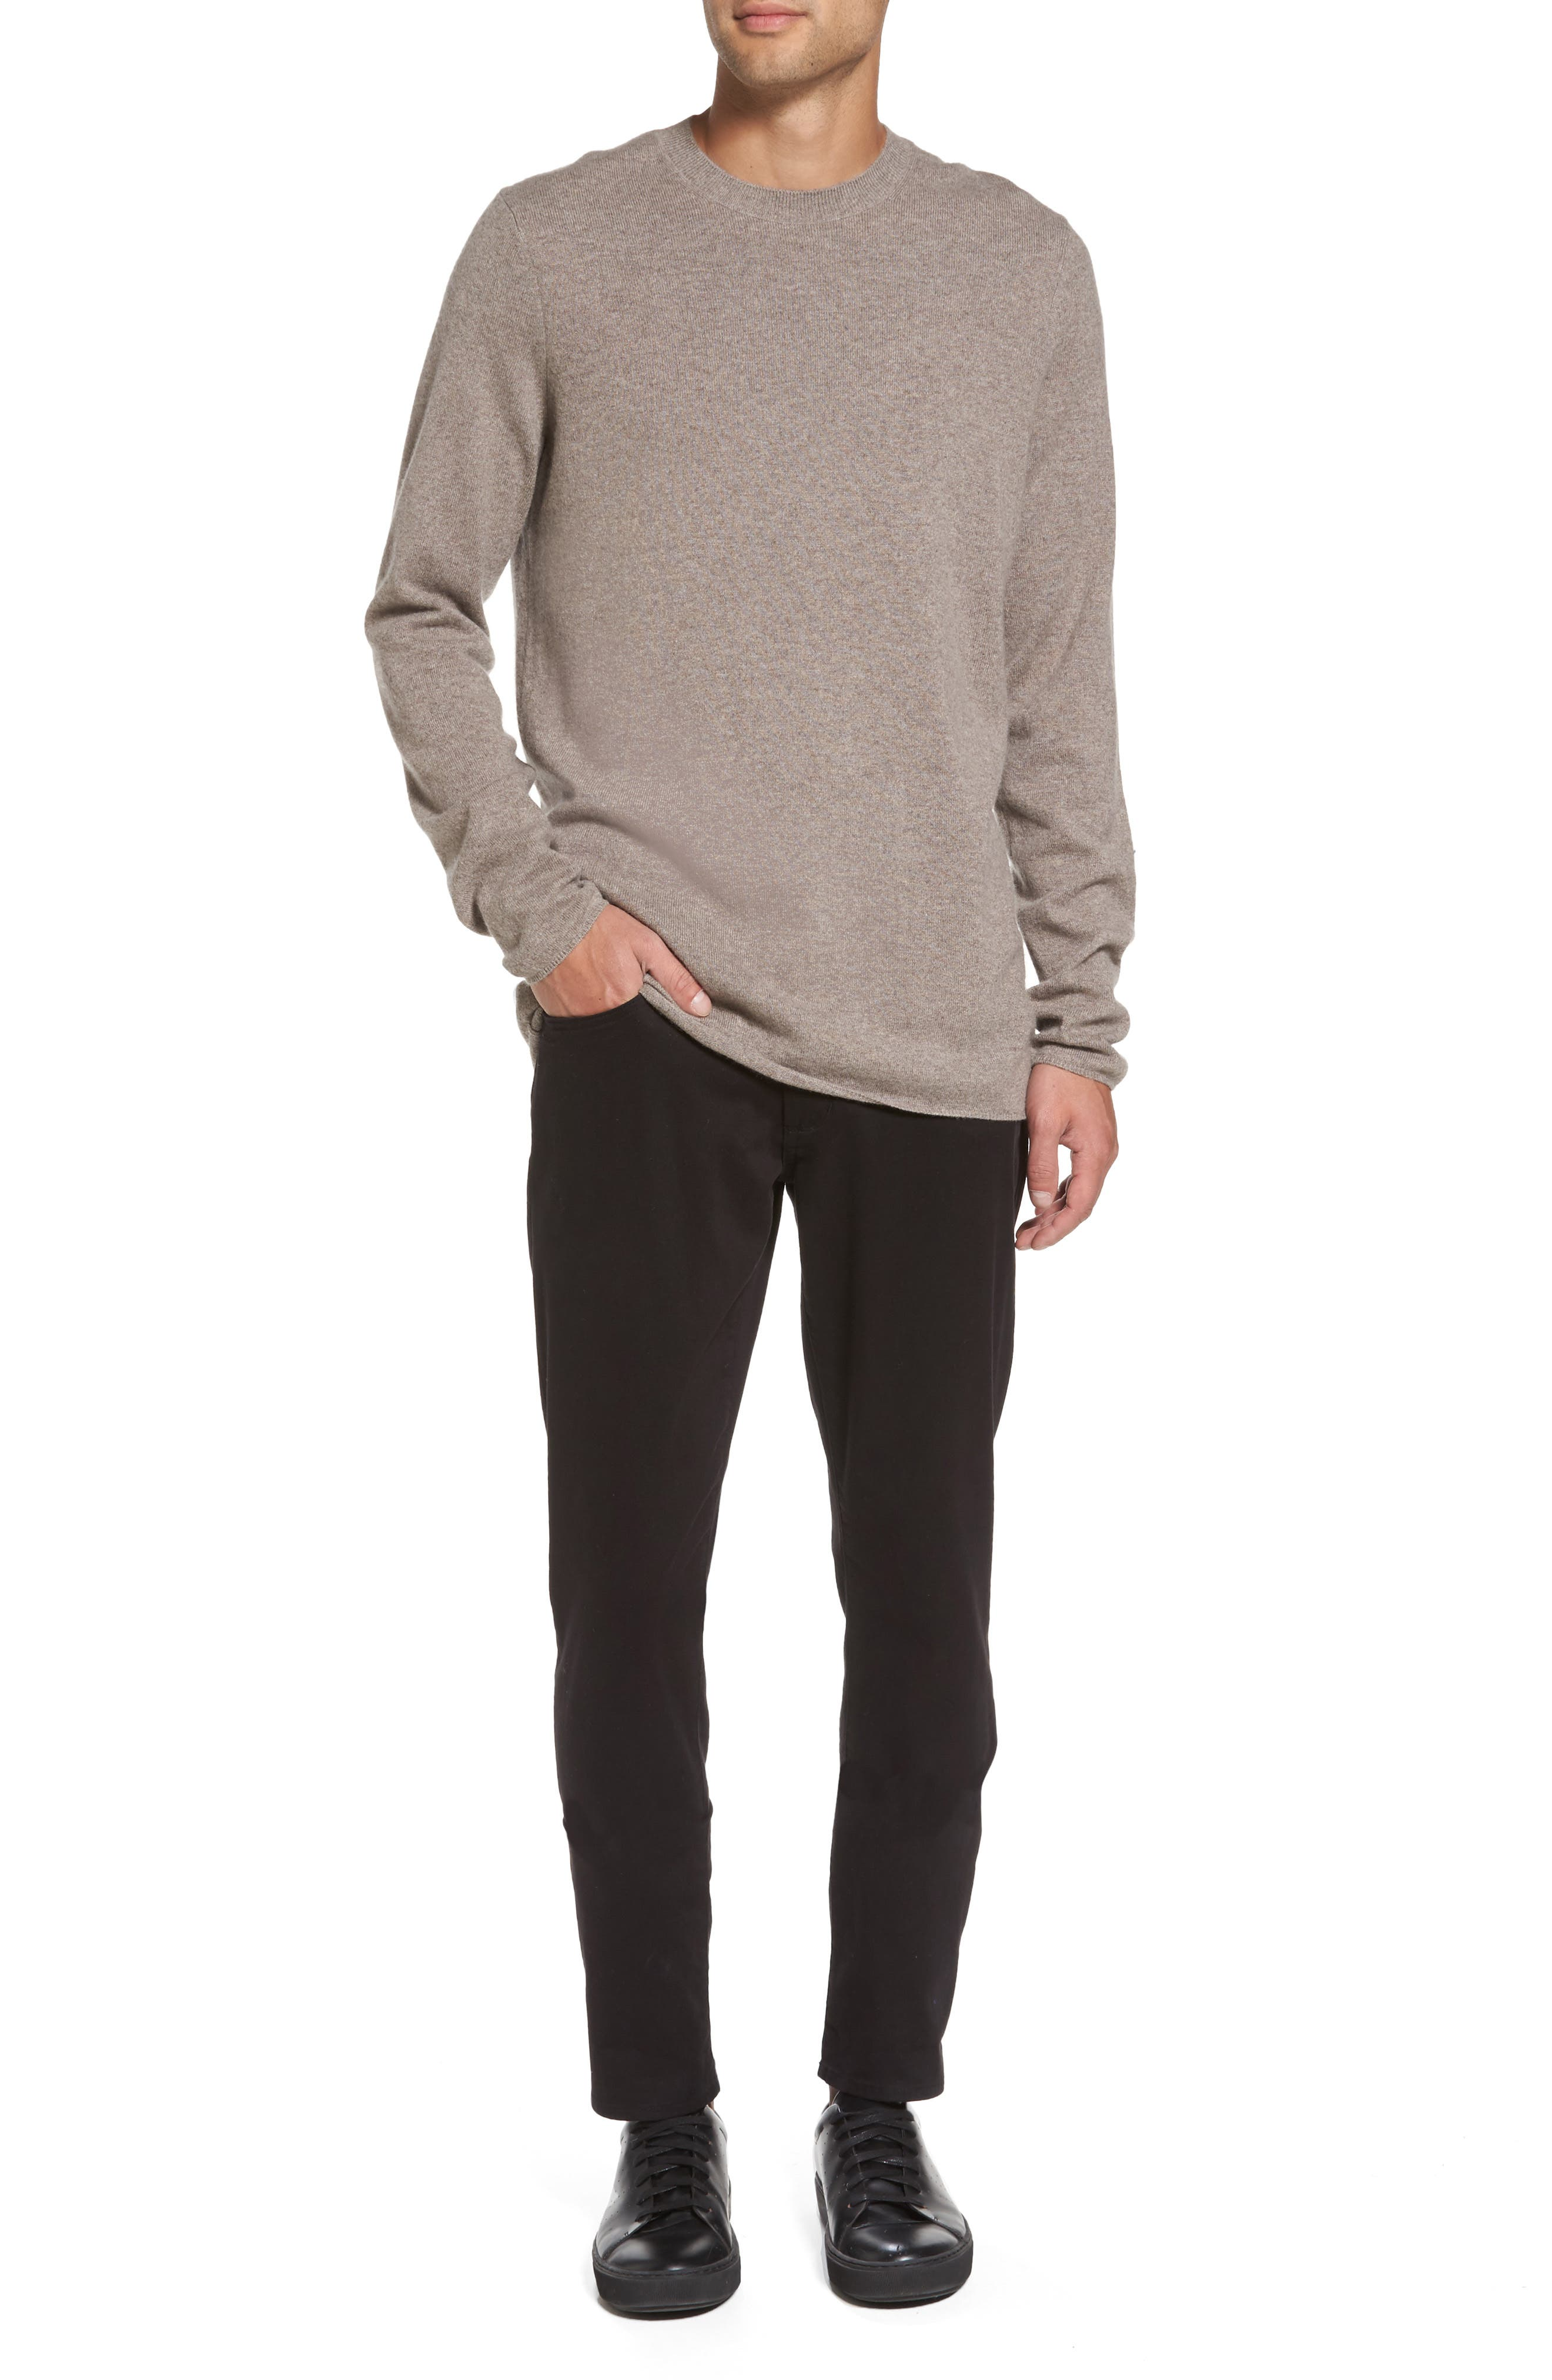 Regular Fit Crewneck Sweater,                             Alternate thumbnail 7, color,                             281